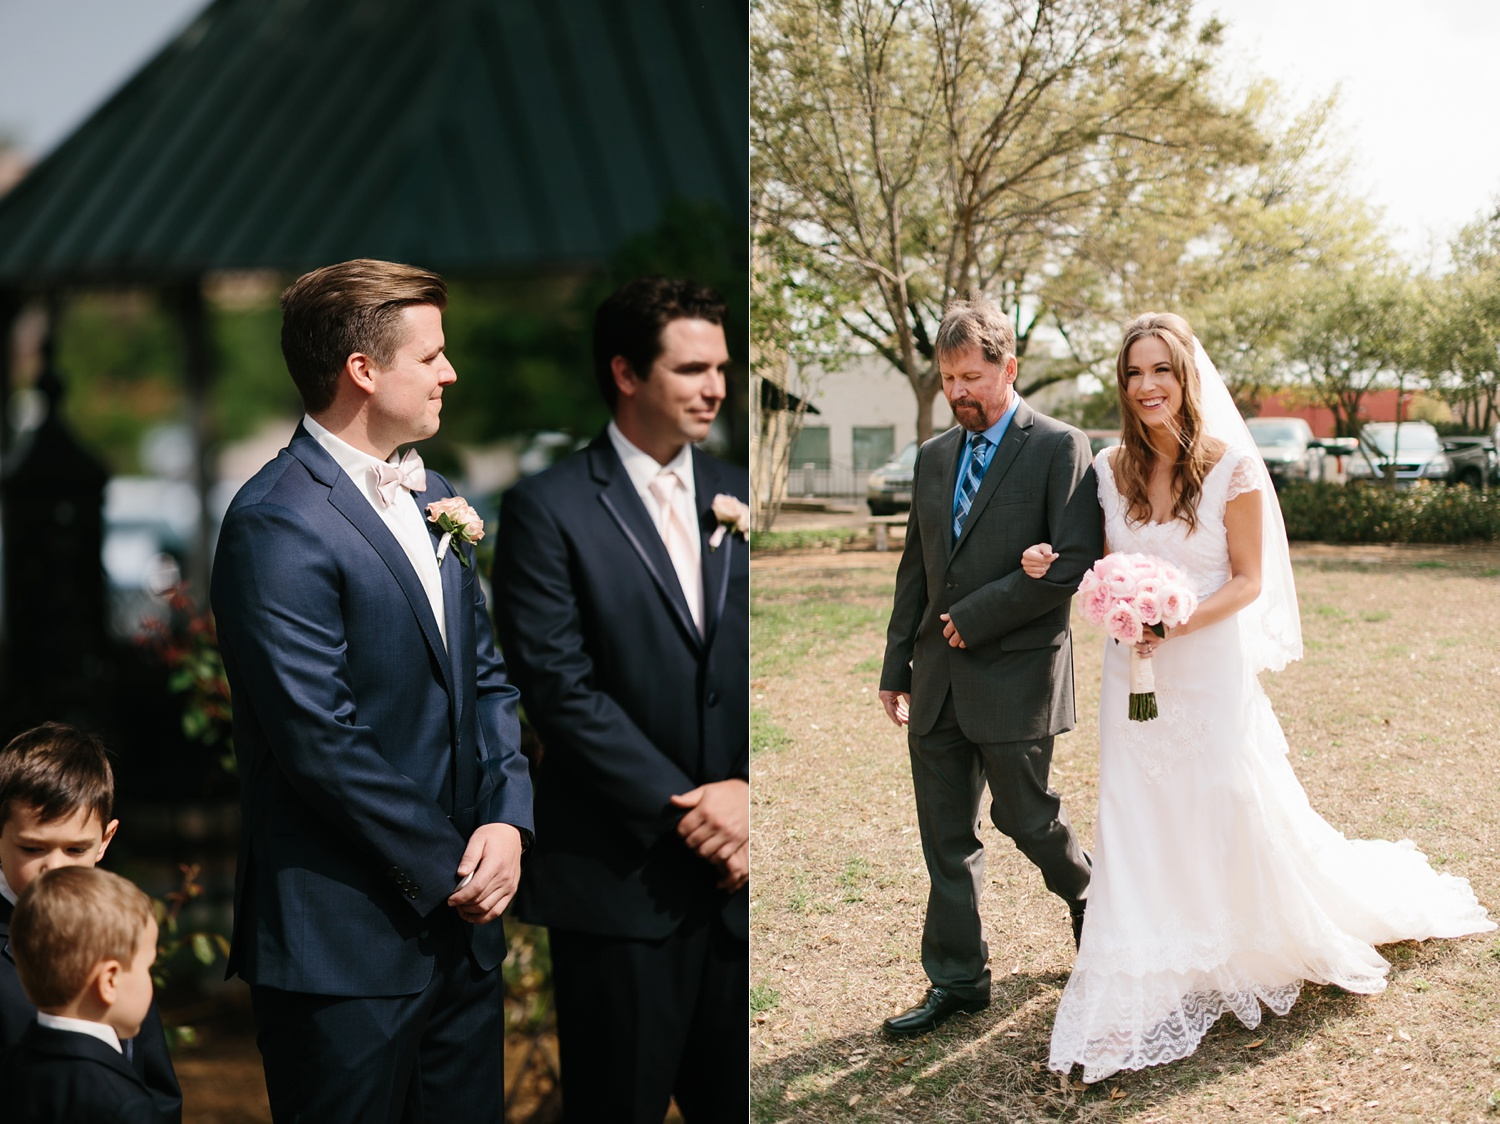 Amber + Daniel an intimate, simple, spring ceremony at Heard Craig Center and reception at Gather in McKinney, Texas by North Texas Wedding Photographer Rachel Meagan Photography 052